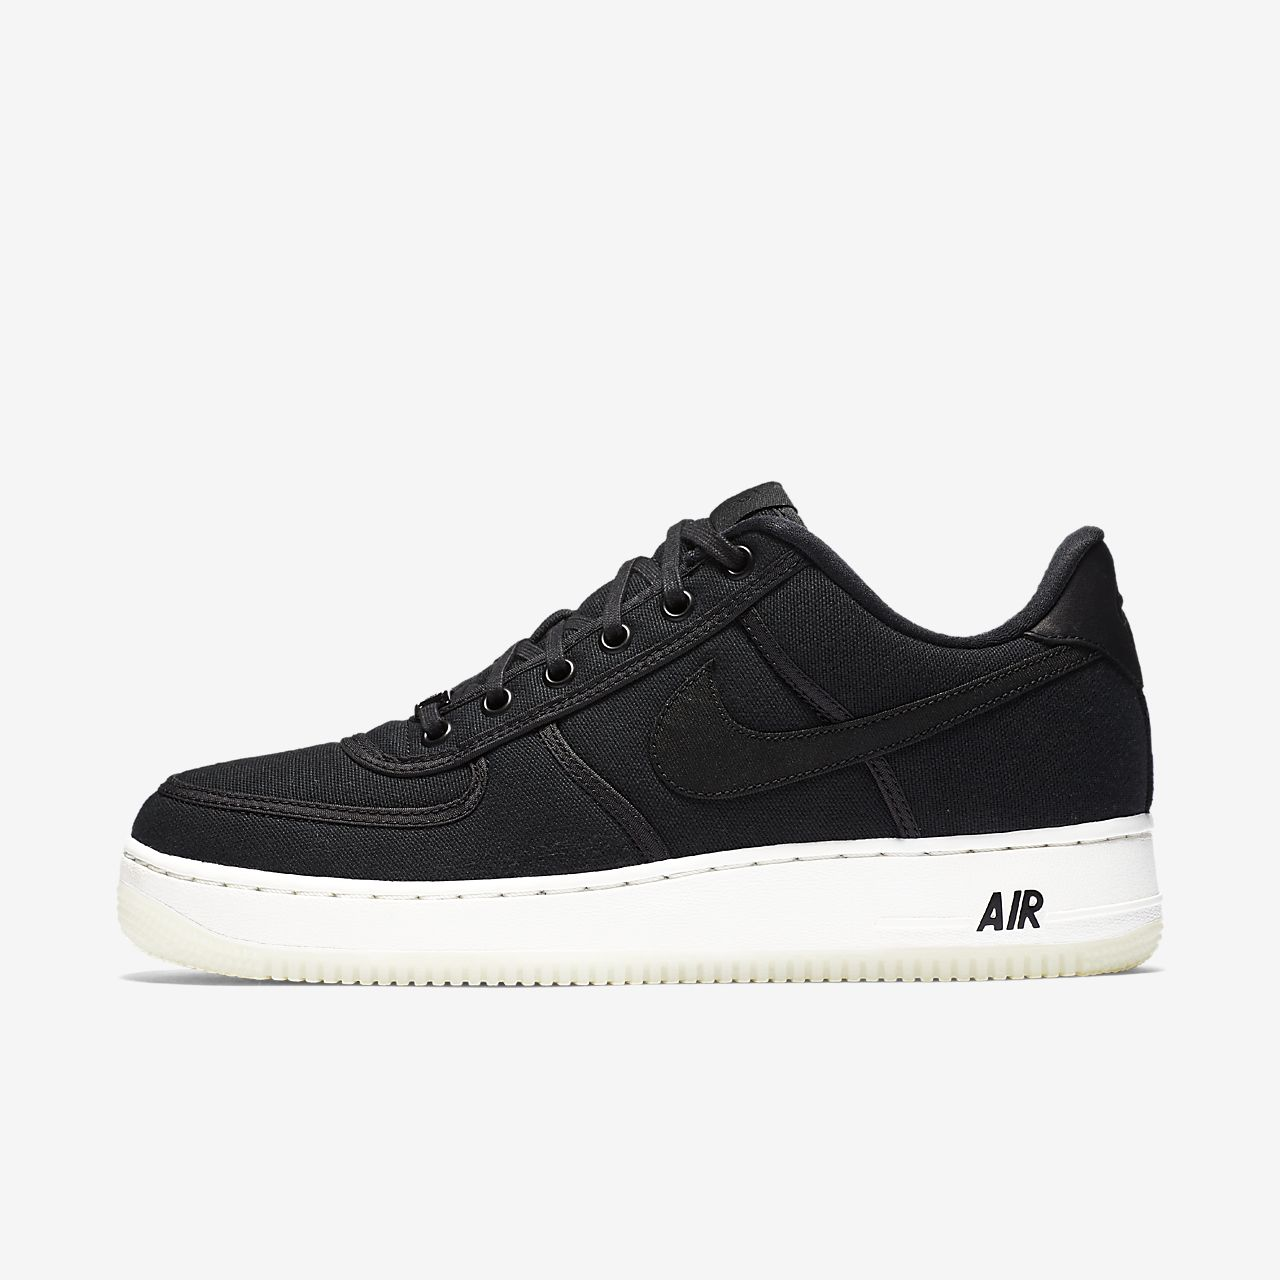 buy online 67dd6 9874b ... Nike Air Force 1 Low Retro QS Men s Shoe